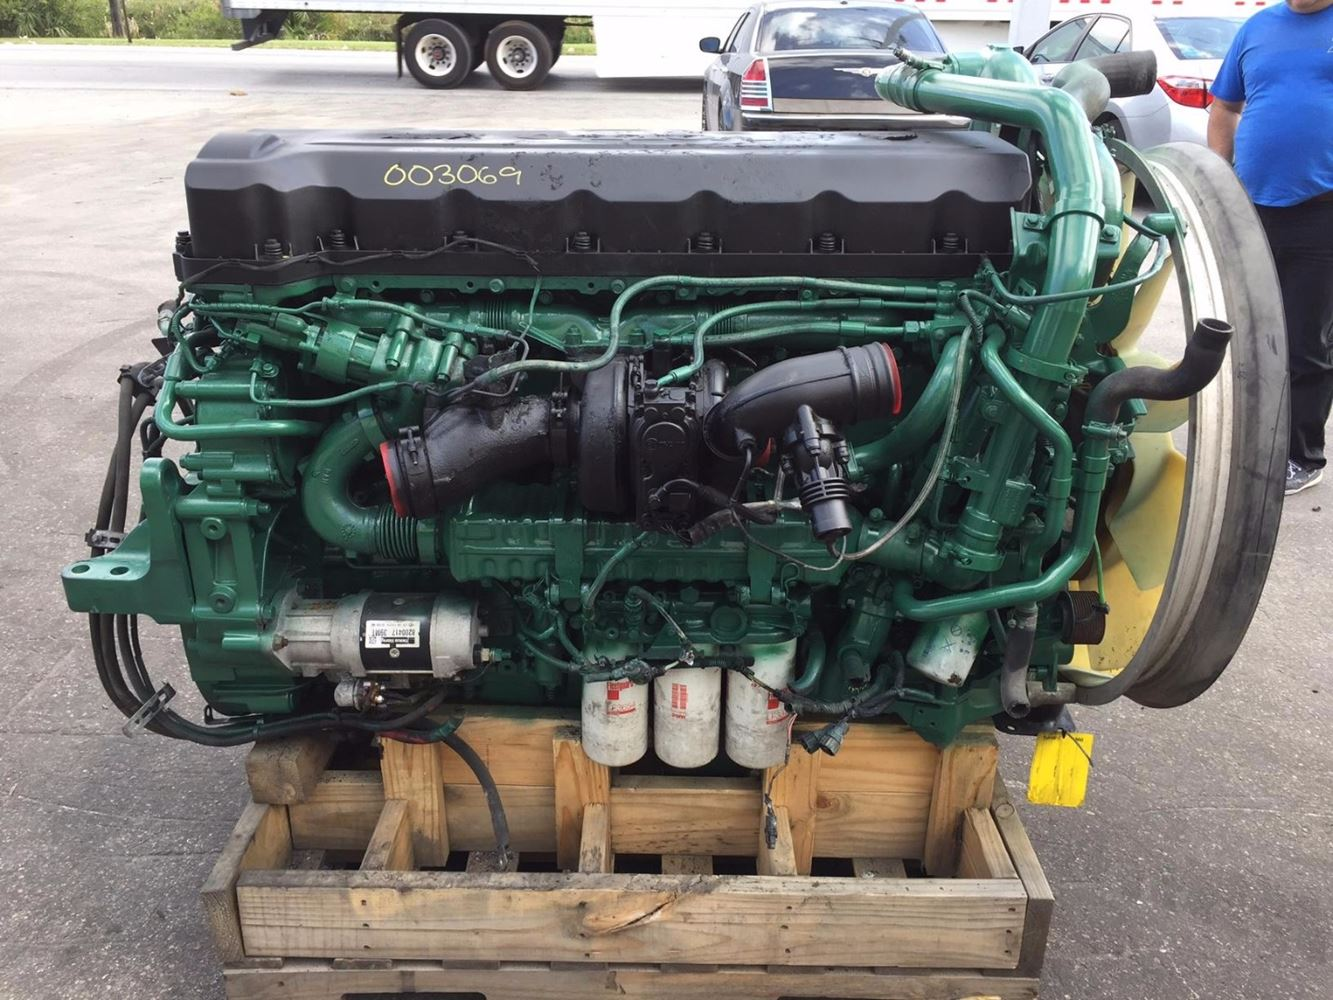 Volvo d13 stock 003069 engine assys tpi for Volvo motors for sale